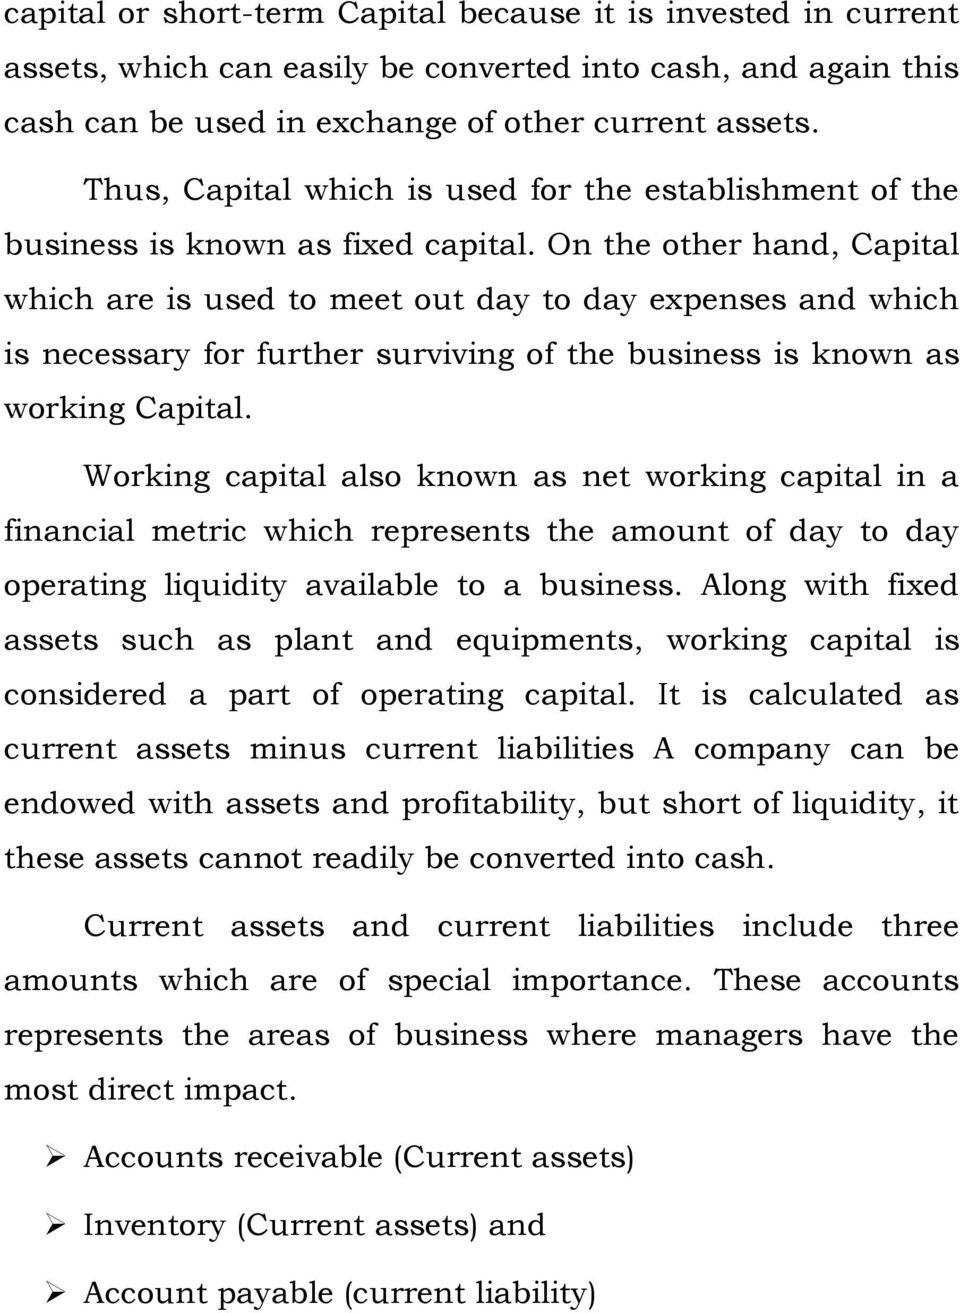 On the other hand, Capital which are is used to meet out day to day expenses and which is necessary for further surviving of the business is known as working Capital.